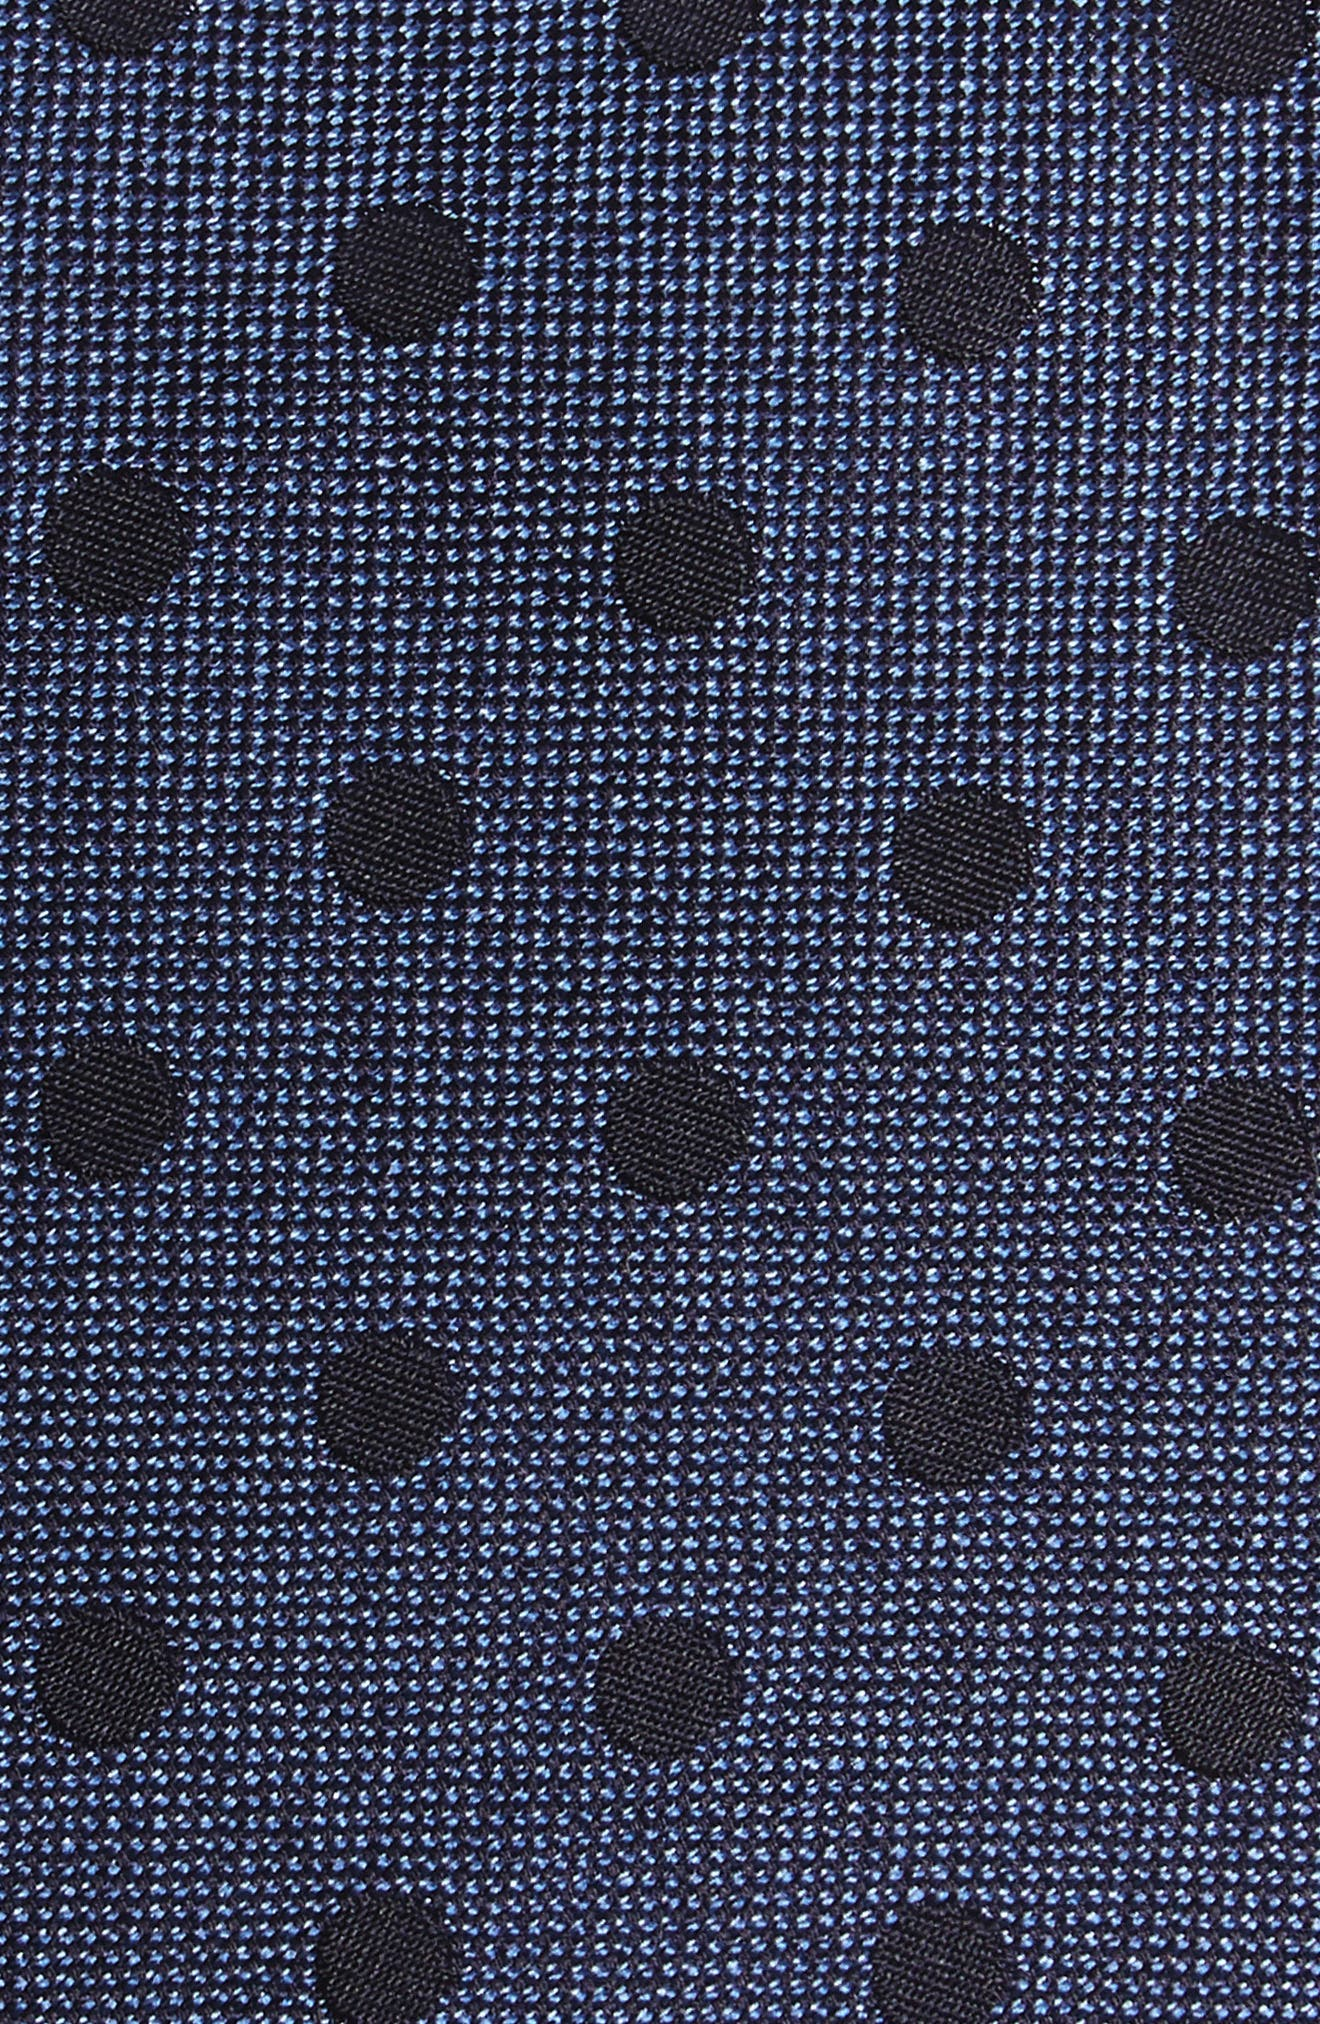 Dot Silk Tie,                             Alternate thumbnail 4, color,